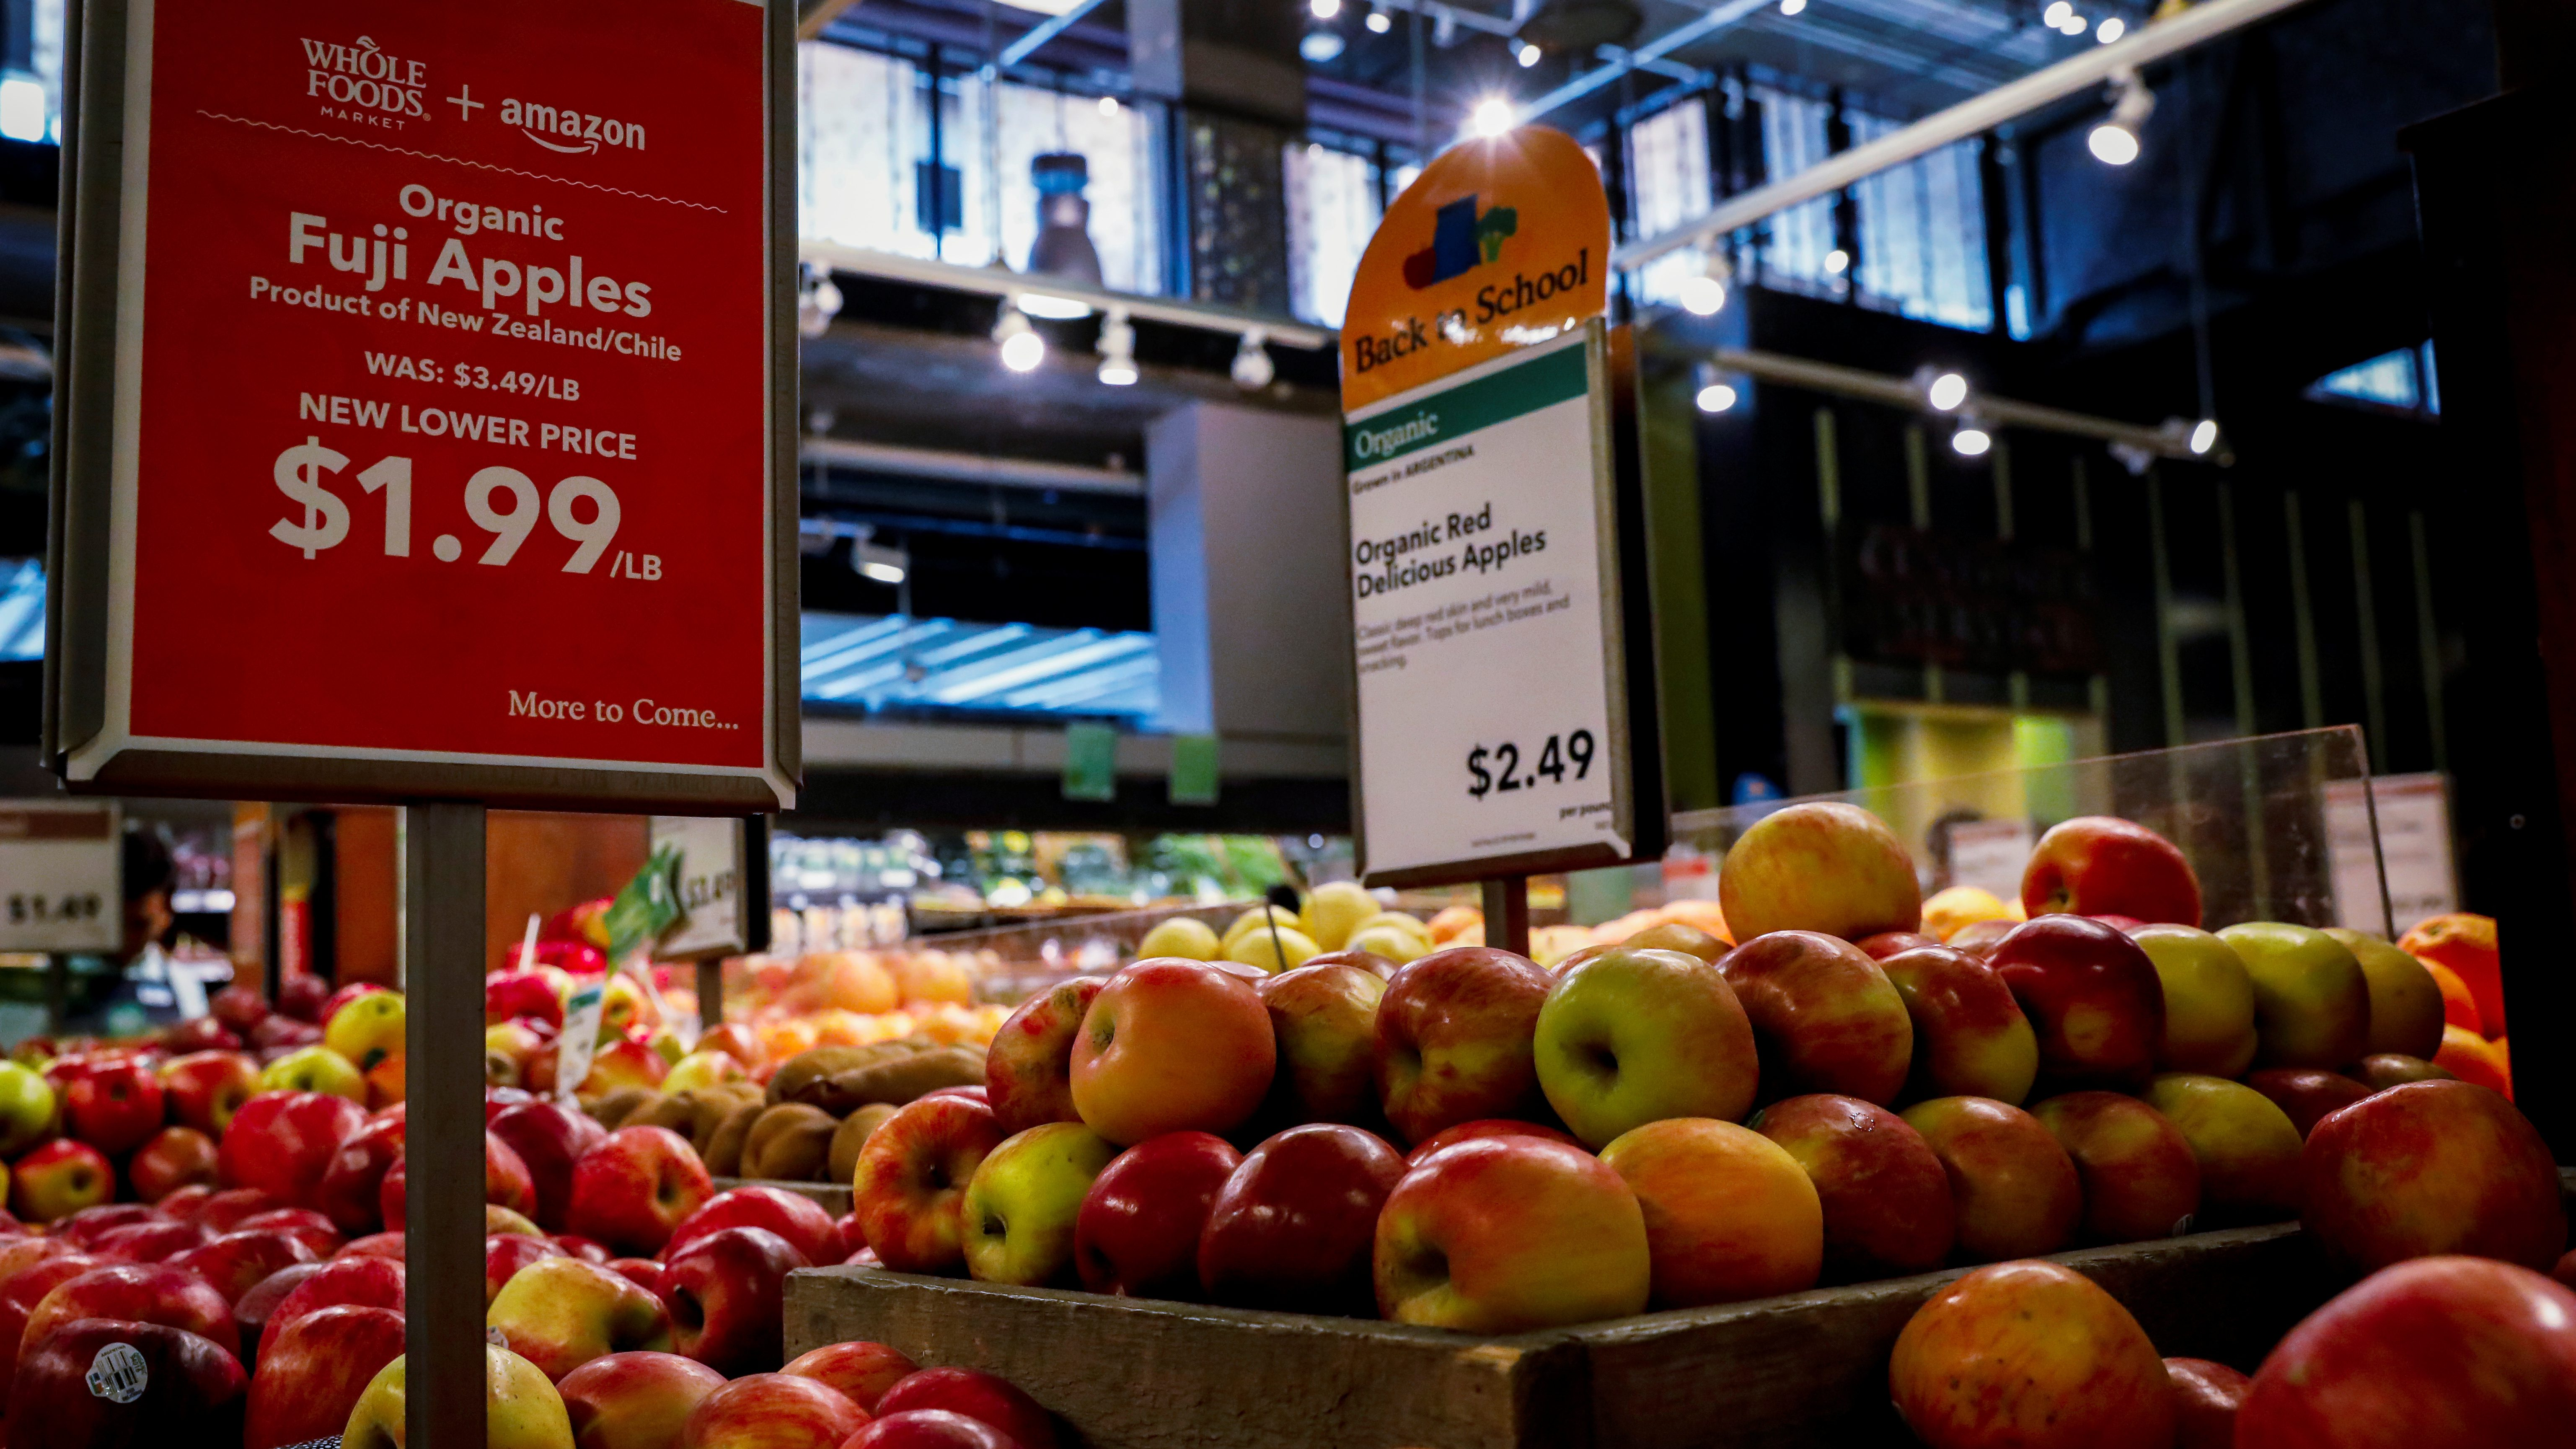 Amazon Whole Foods Amazon Prime Could Double Whole Foods Shoppers Over The Next